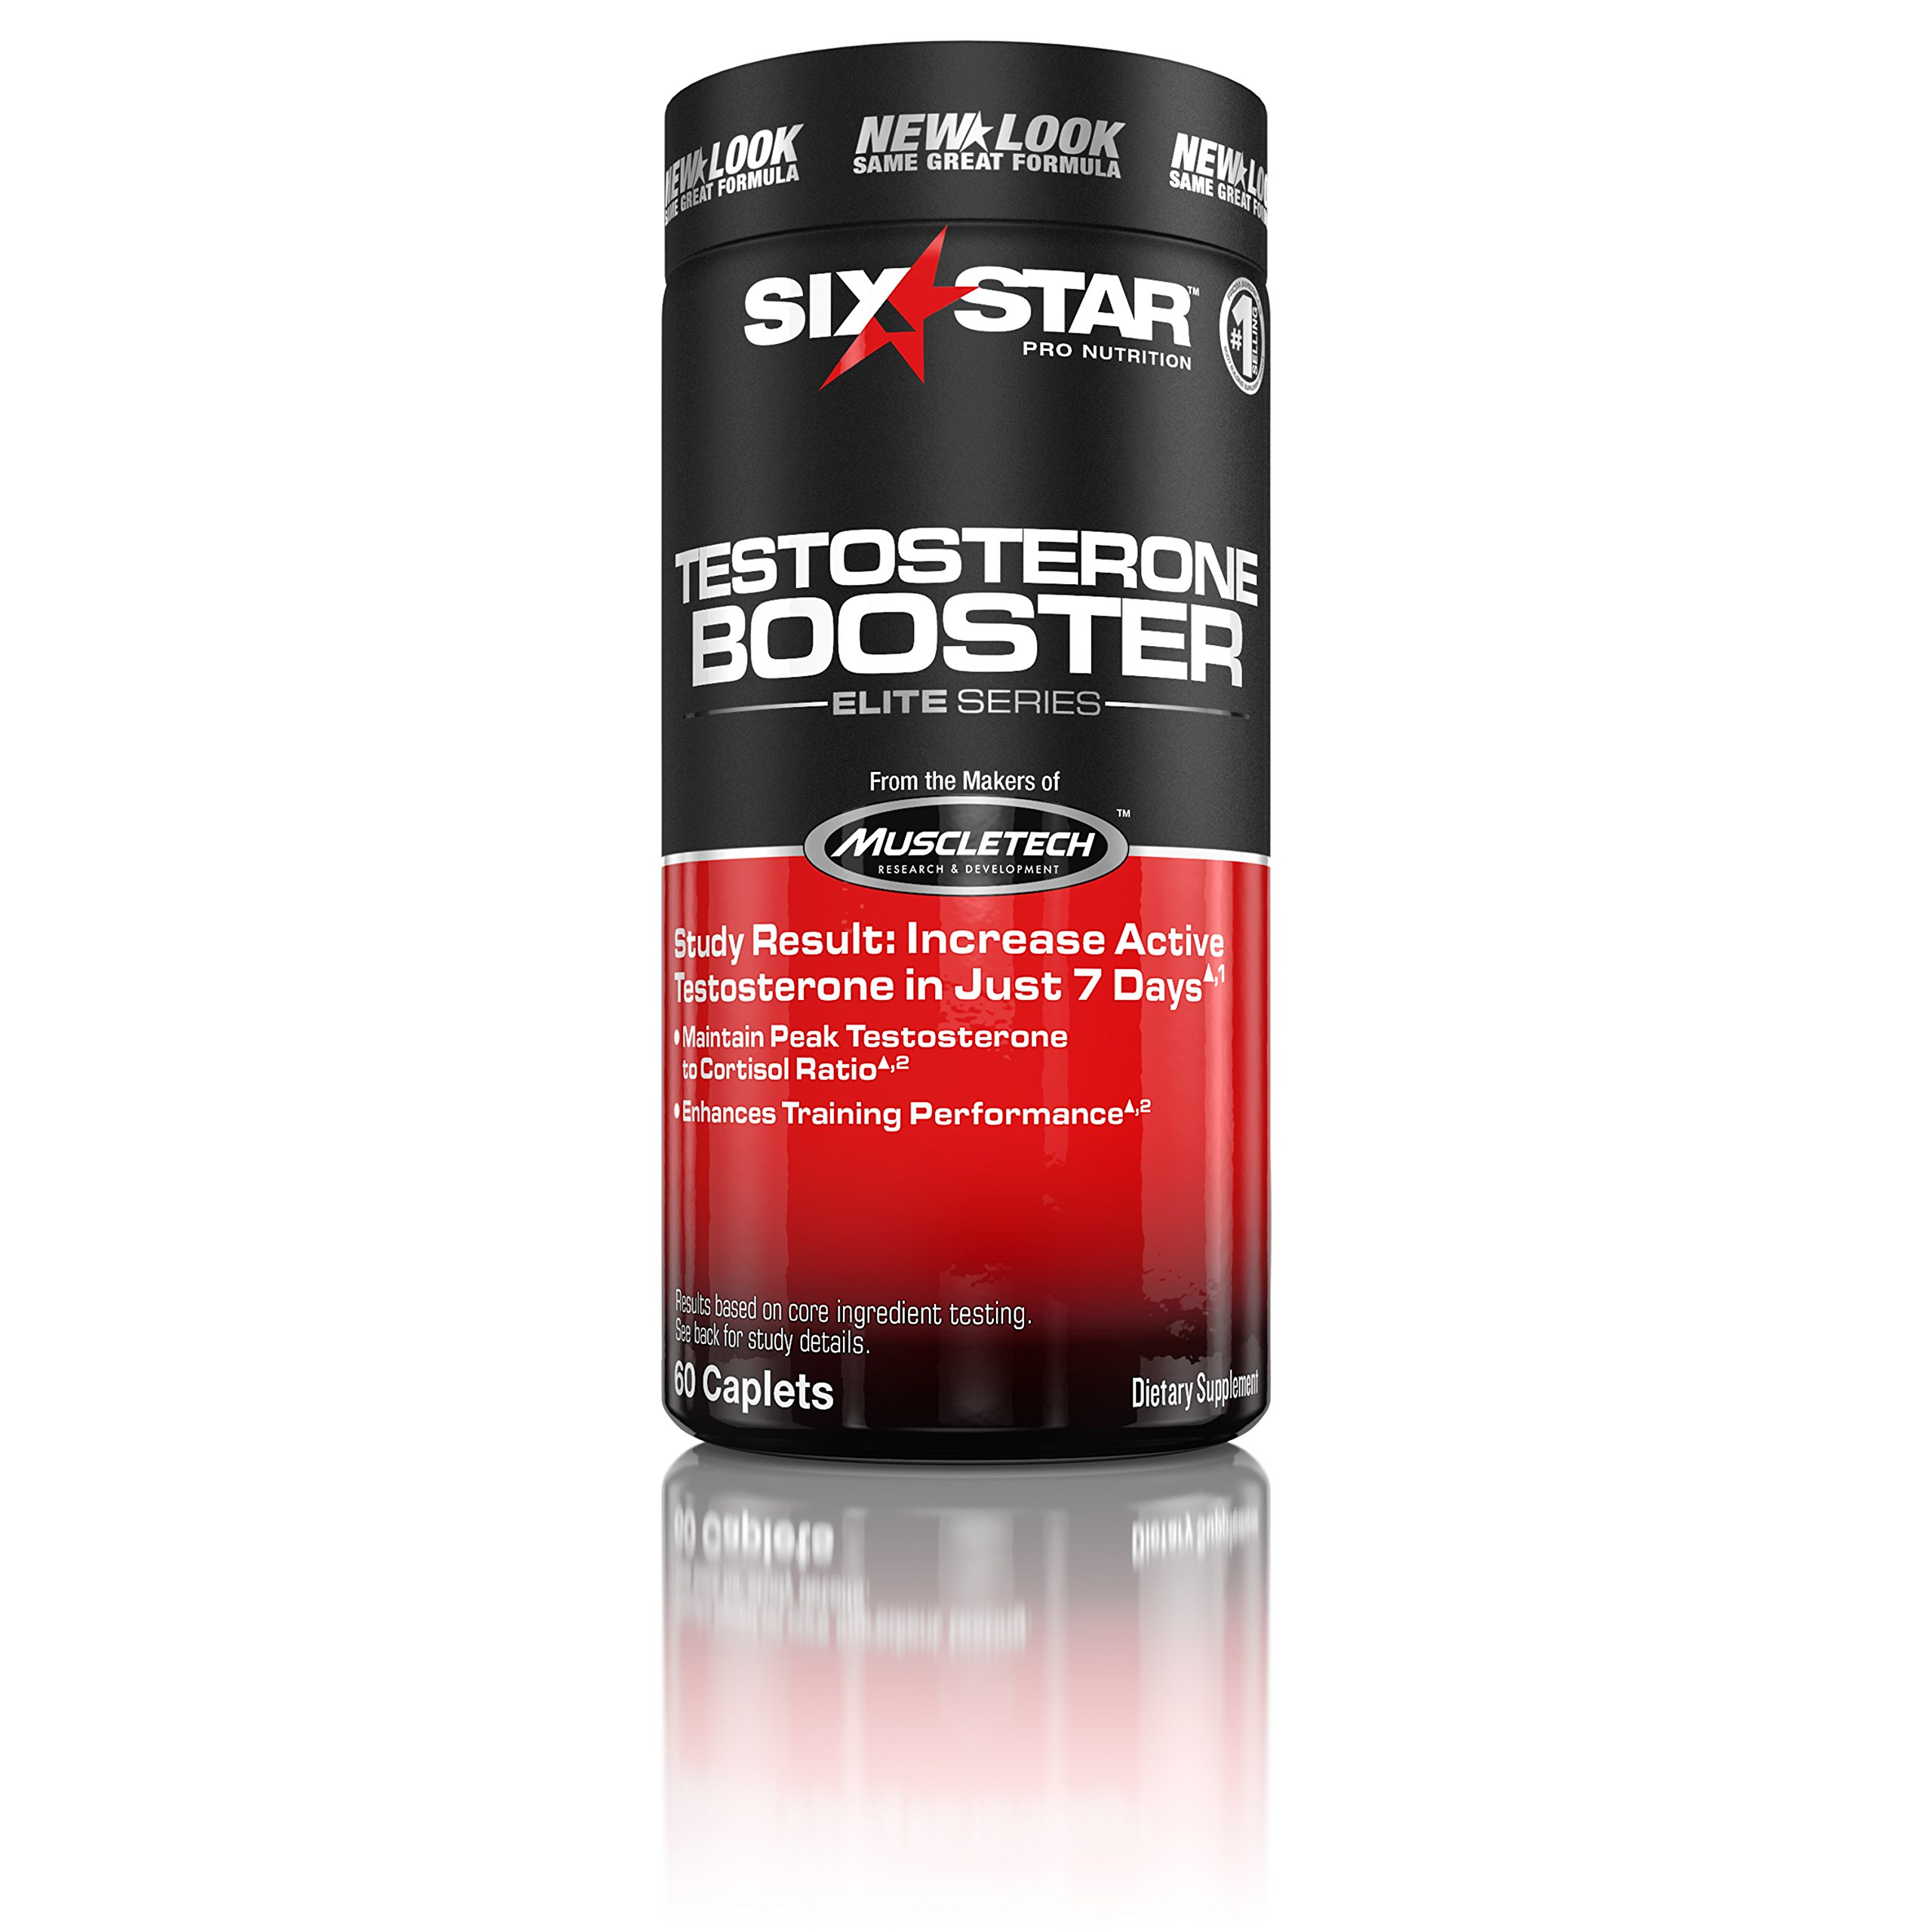 Six Star Testosterone Booster Supplement, Extreme Strength, Enhances  Training Performance, Scientifically Researched,